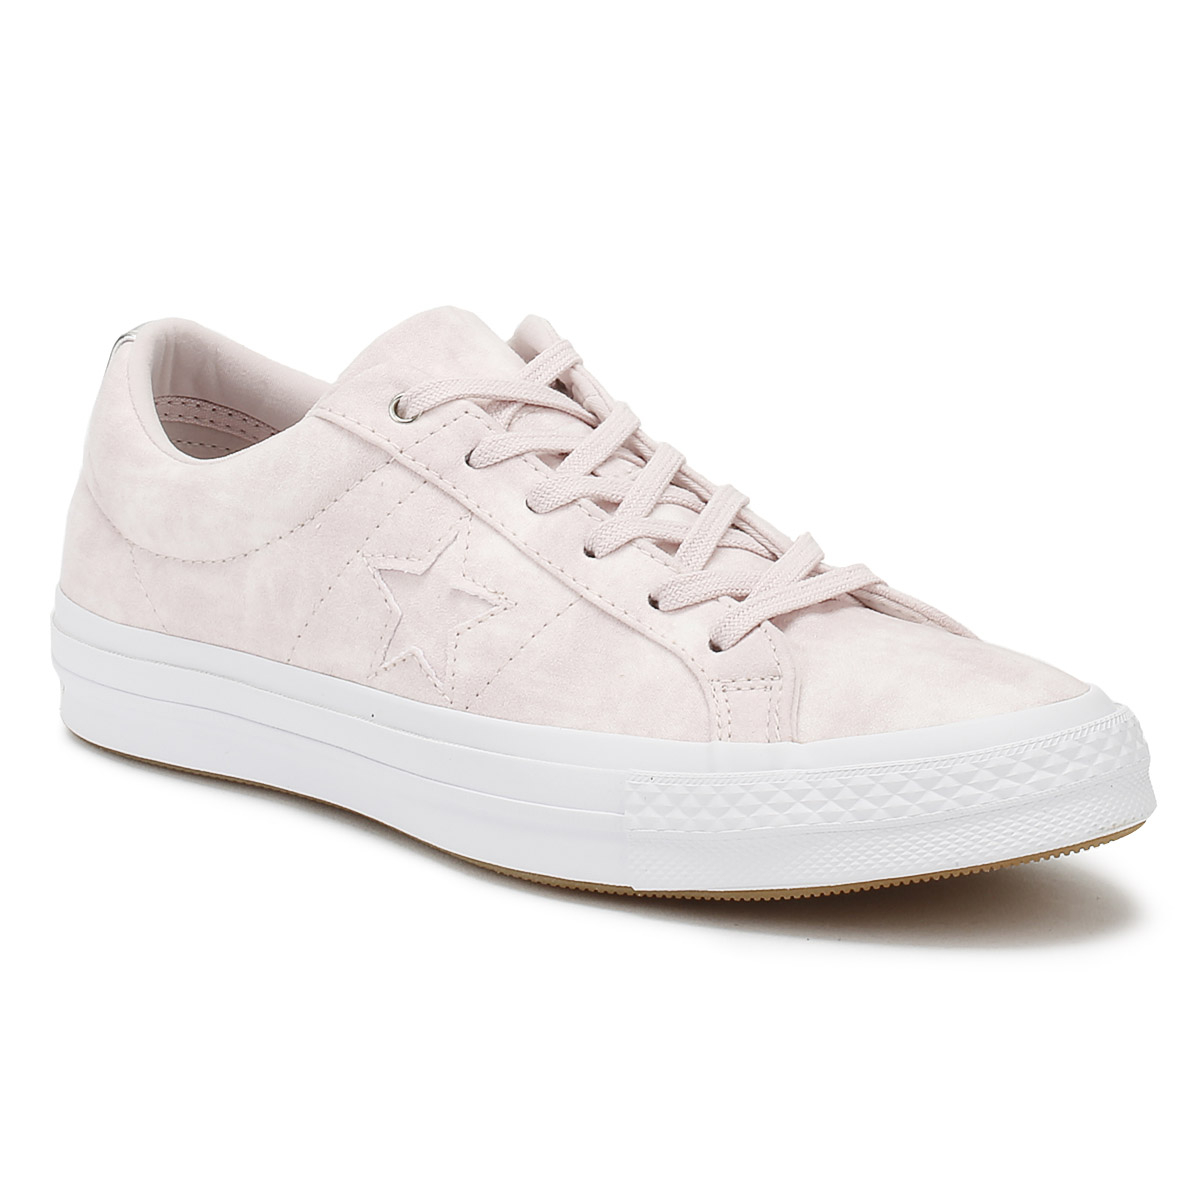 Converse One Star Womens Ox Trainers Barely Rose Canvas Lace Up Skate Shoes